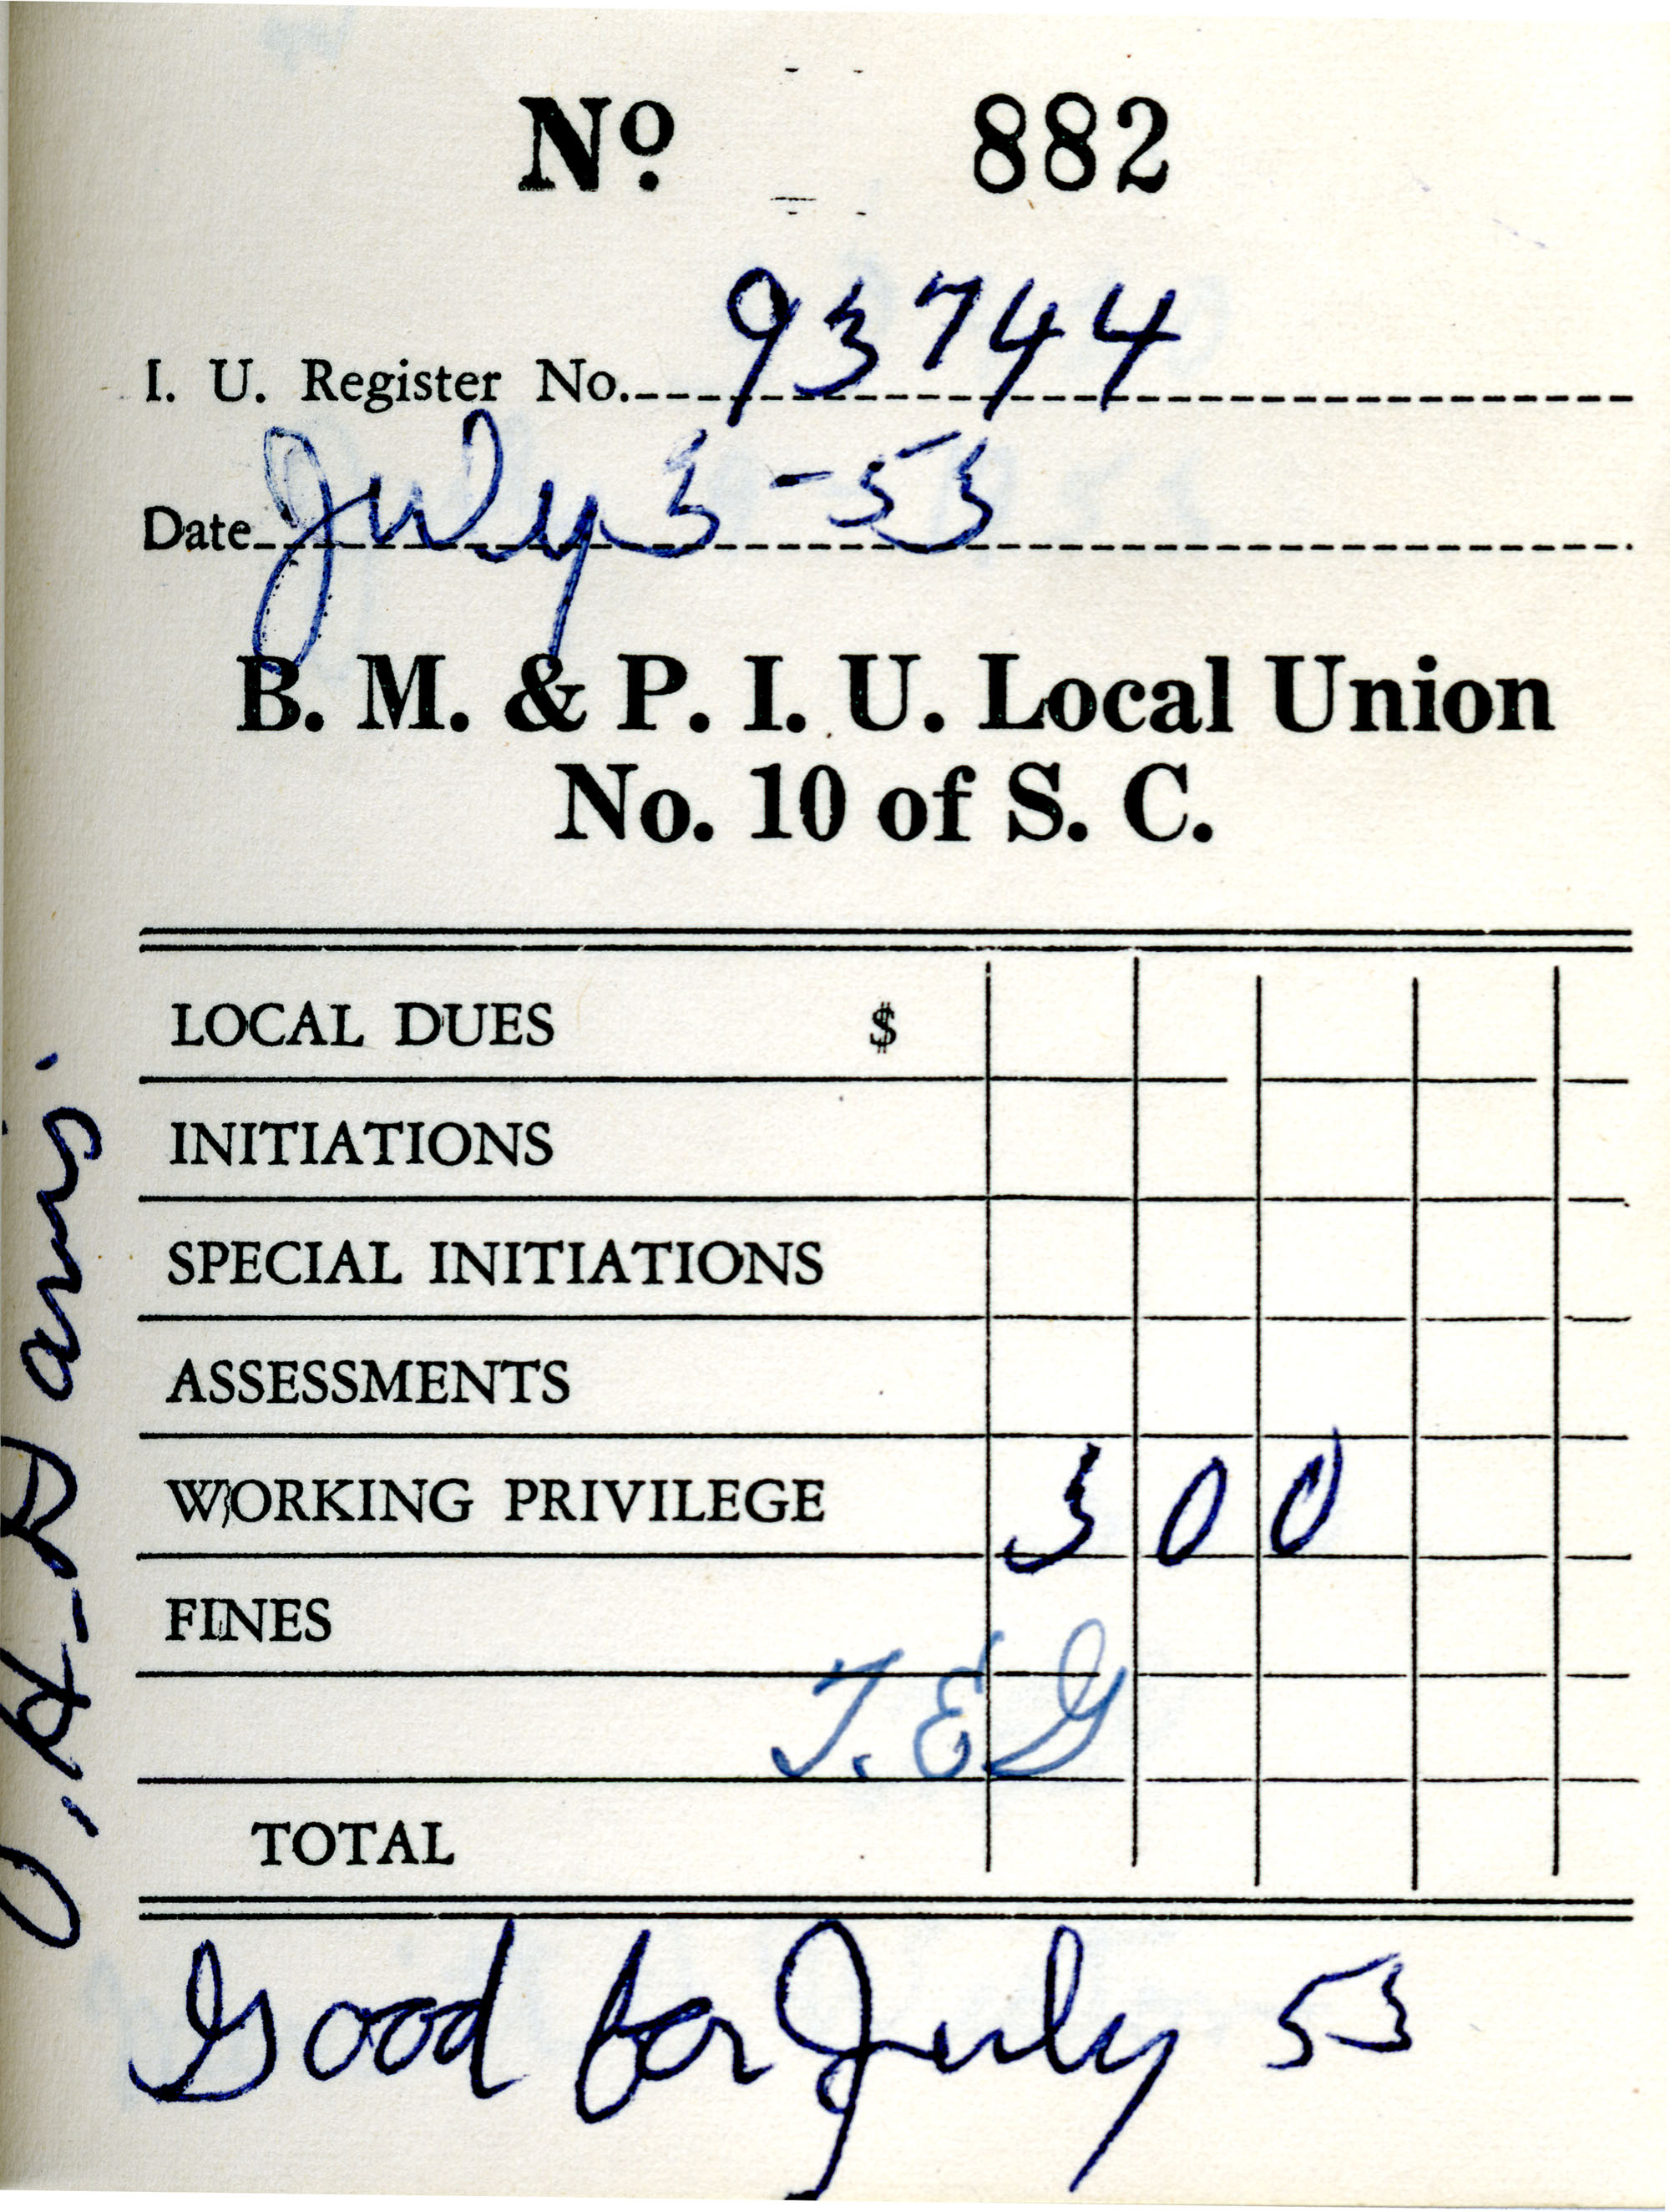 Receipt Book 3, Page 27